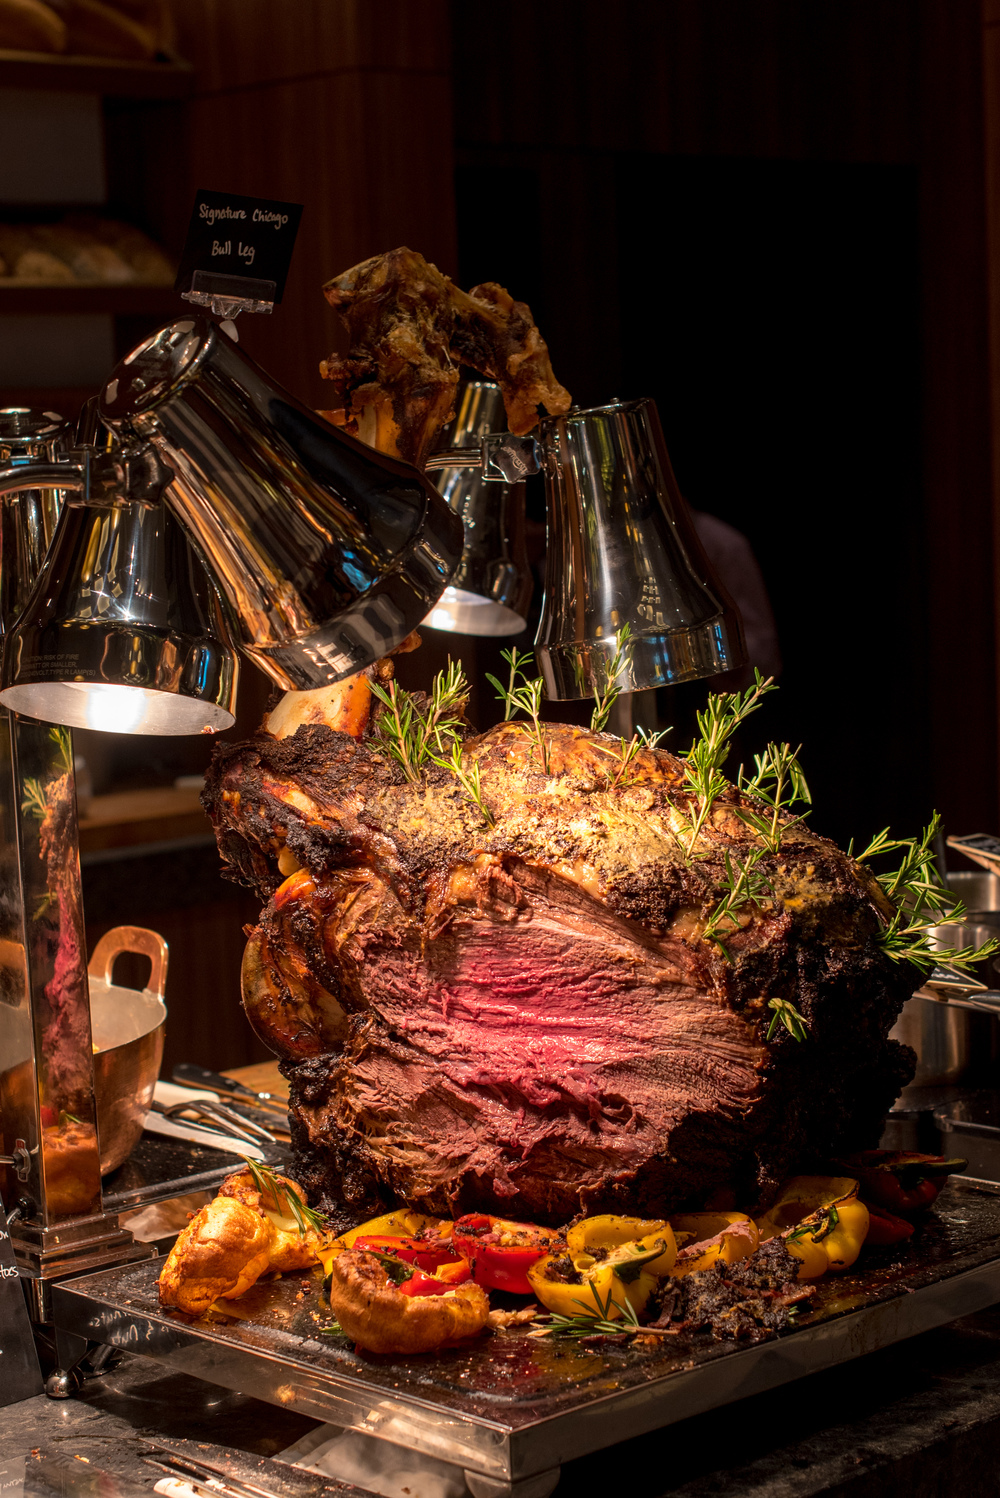 Signature Chicago Bull Leg - Sunday Brunch  J65 - Hotel Jen Tanglin Singapore